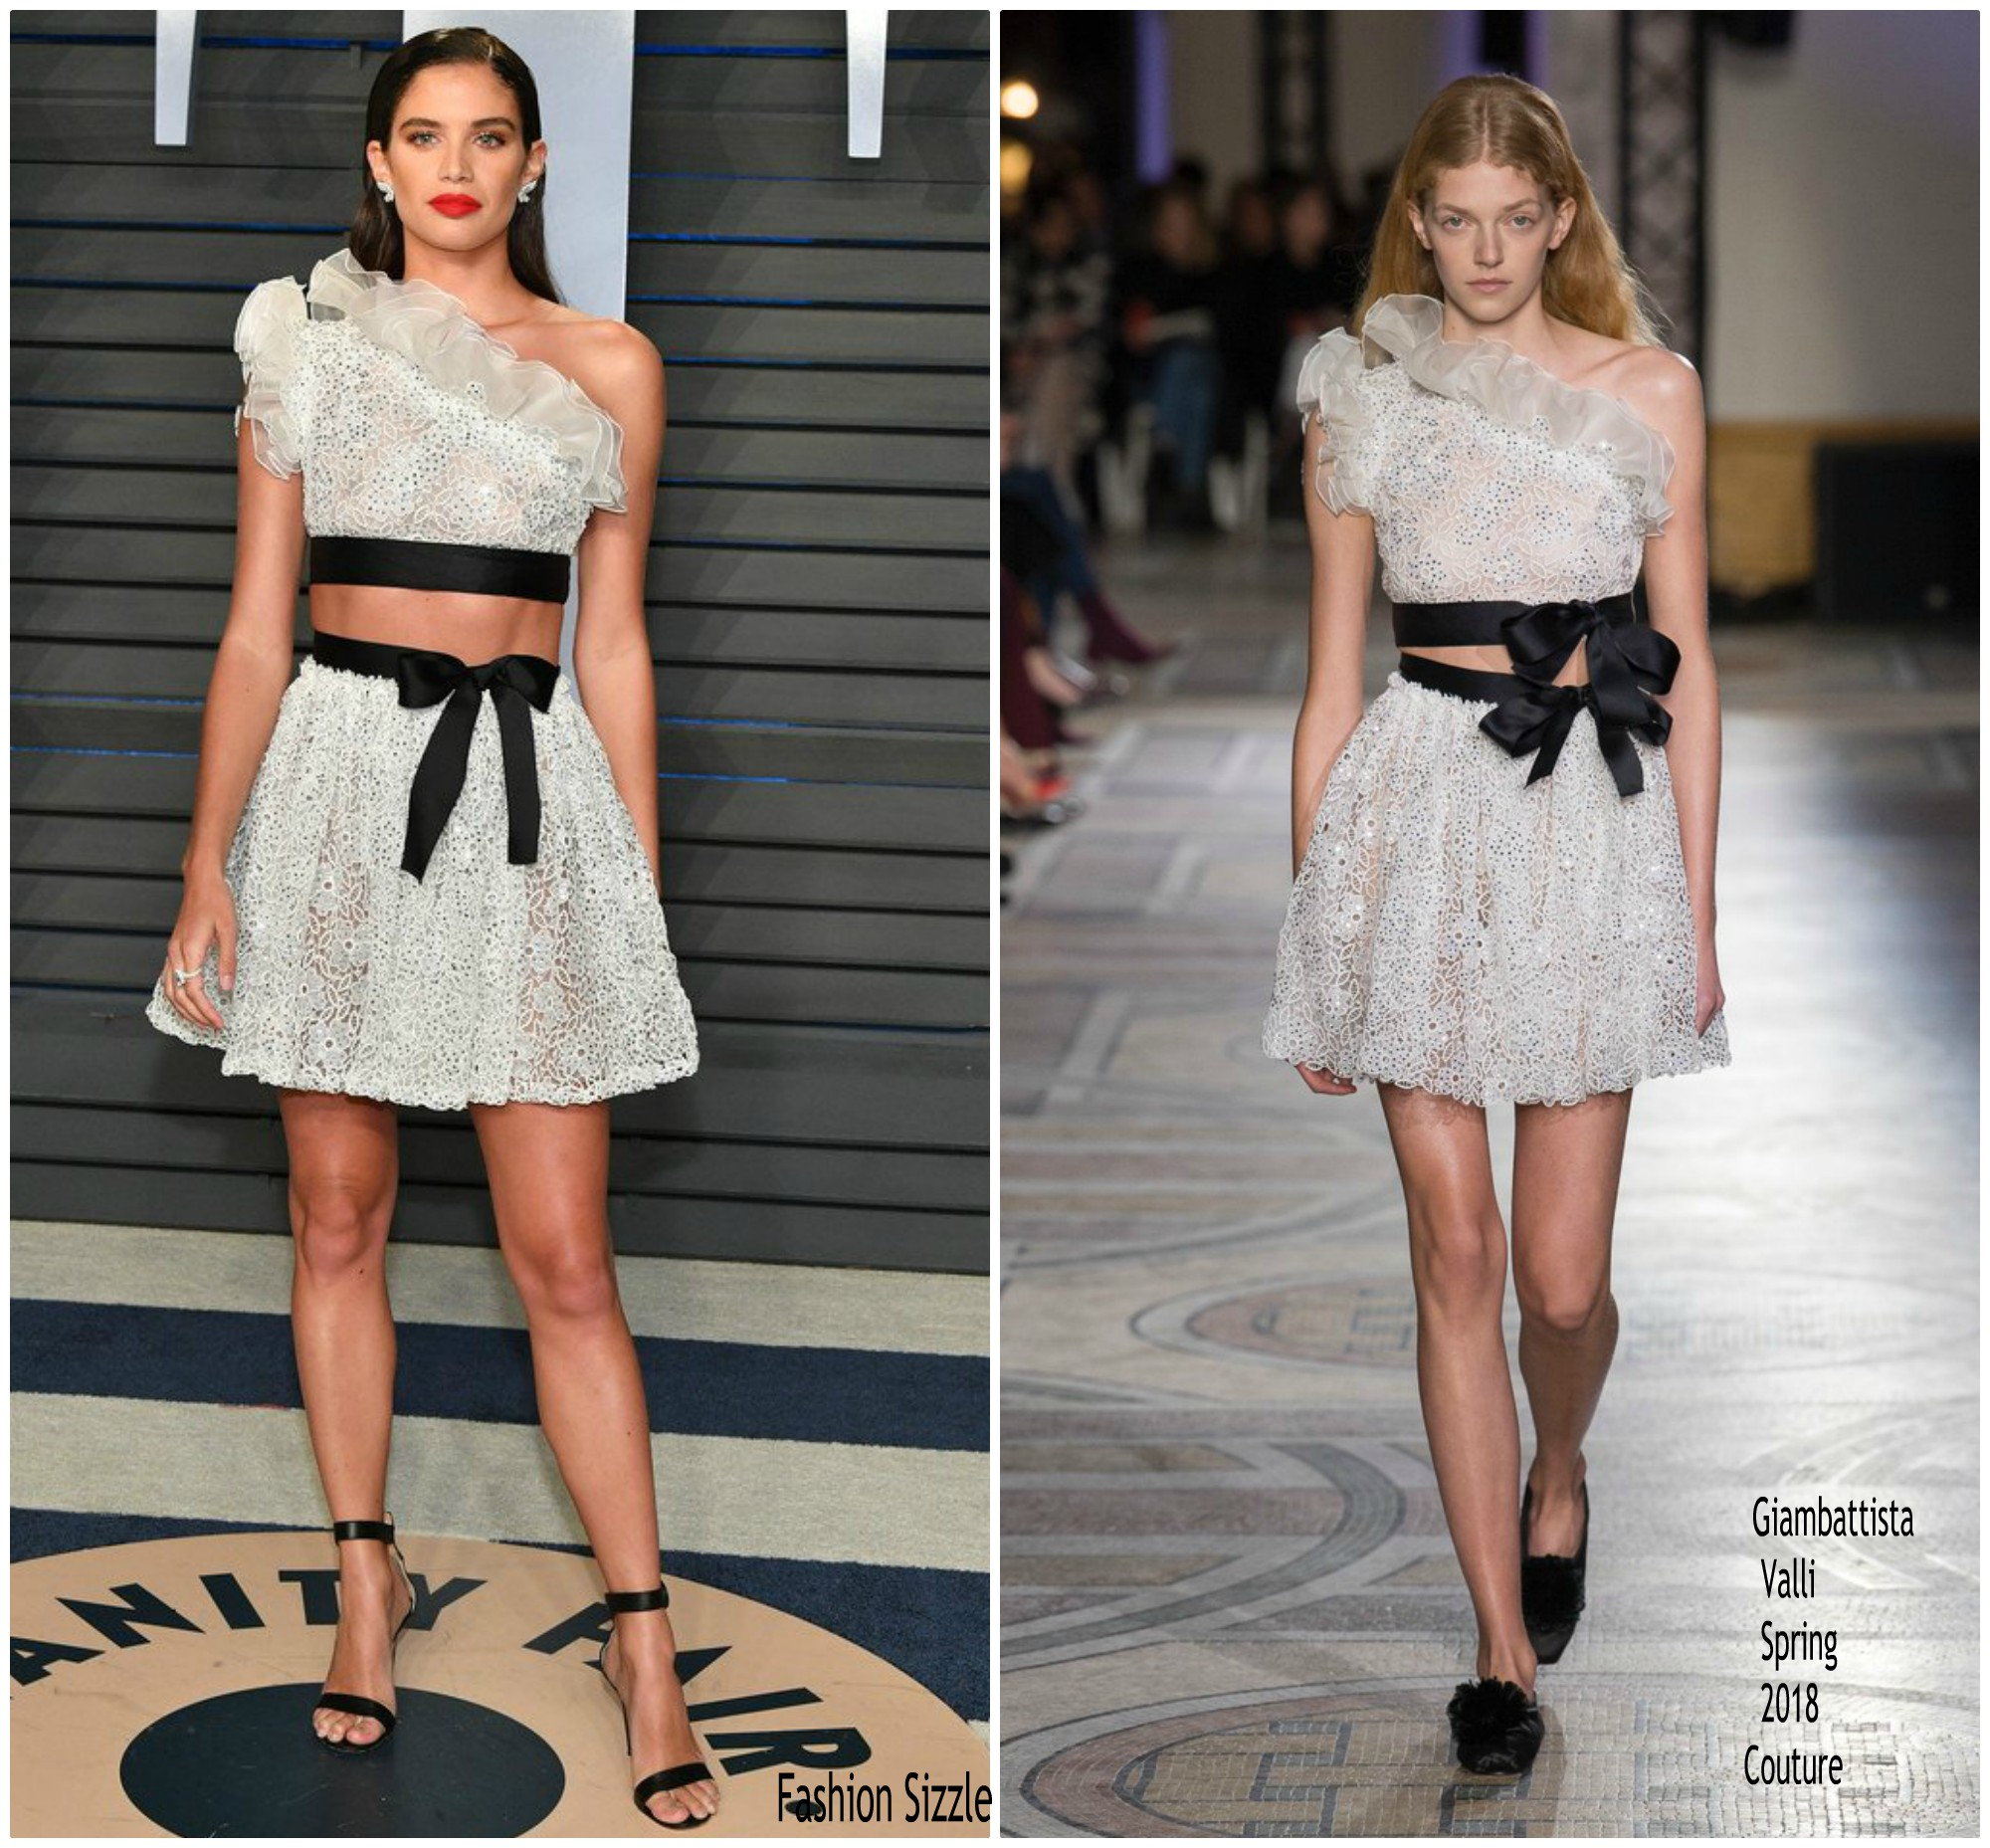 sara-sampaio-in-giambattista-valli-couture-2018-vanity-fair-oscar-party